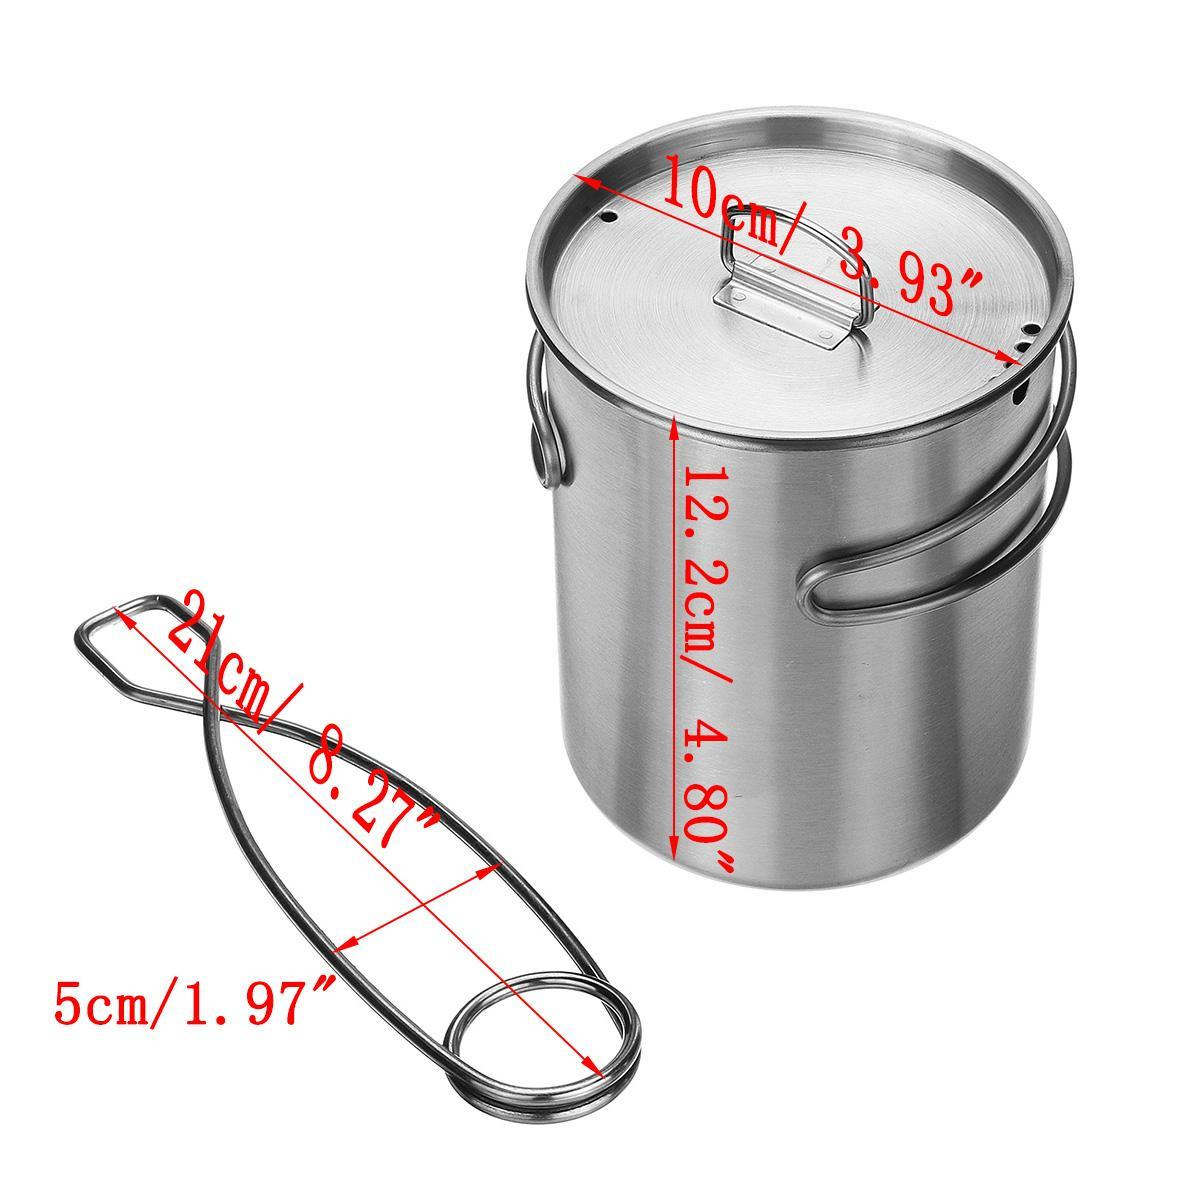 Hook Hanging +750ml 304 Stainless Steel Camping Outdoor Water Food Cup Pot Mug